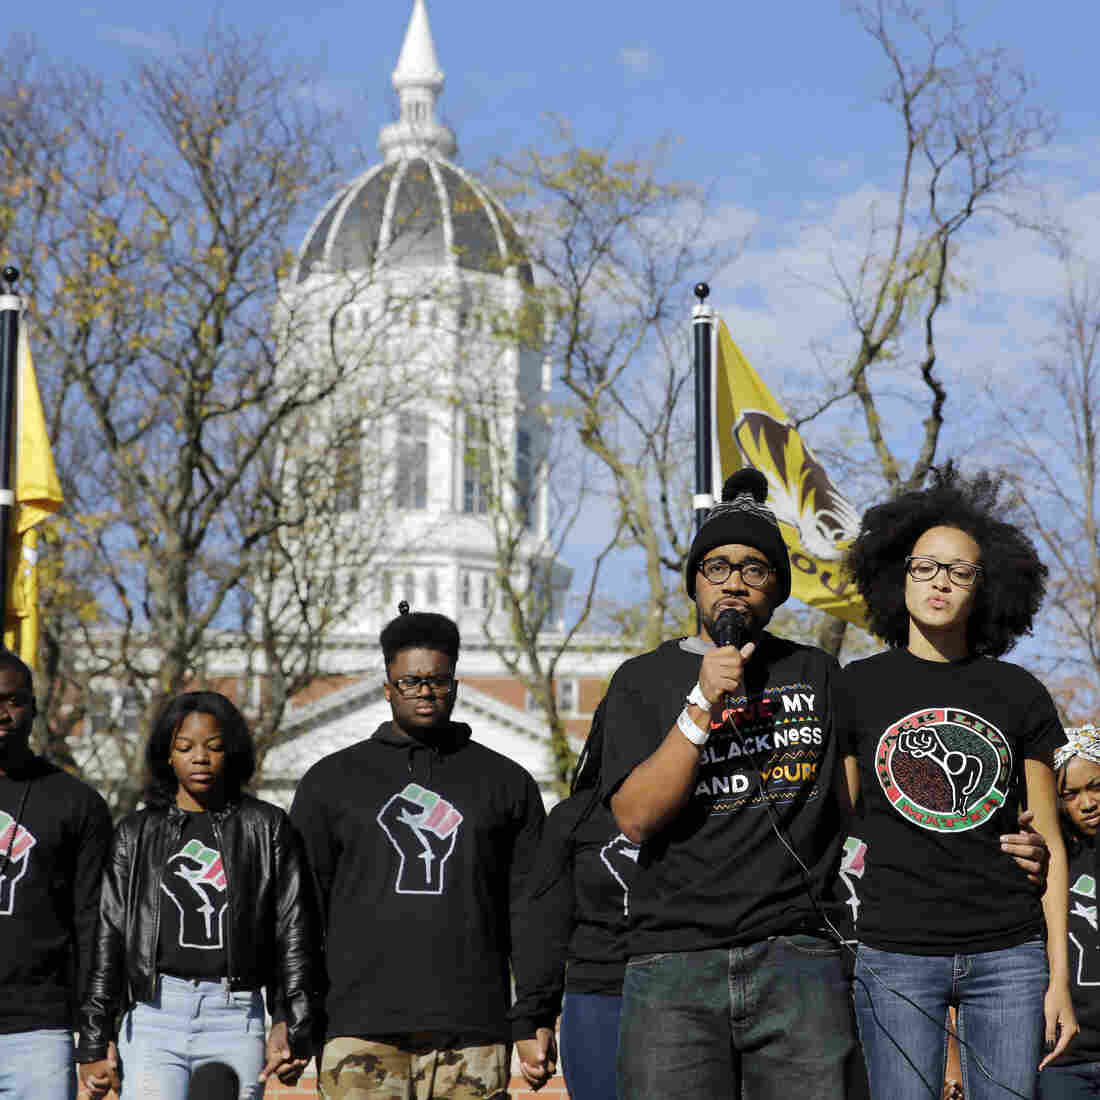 Students at the University of Missouri protested this fall amid concerns about the administration's handling of racial issues.